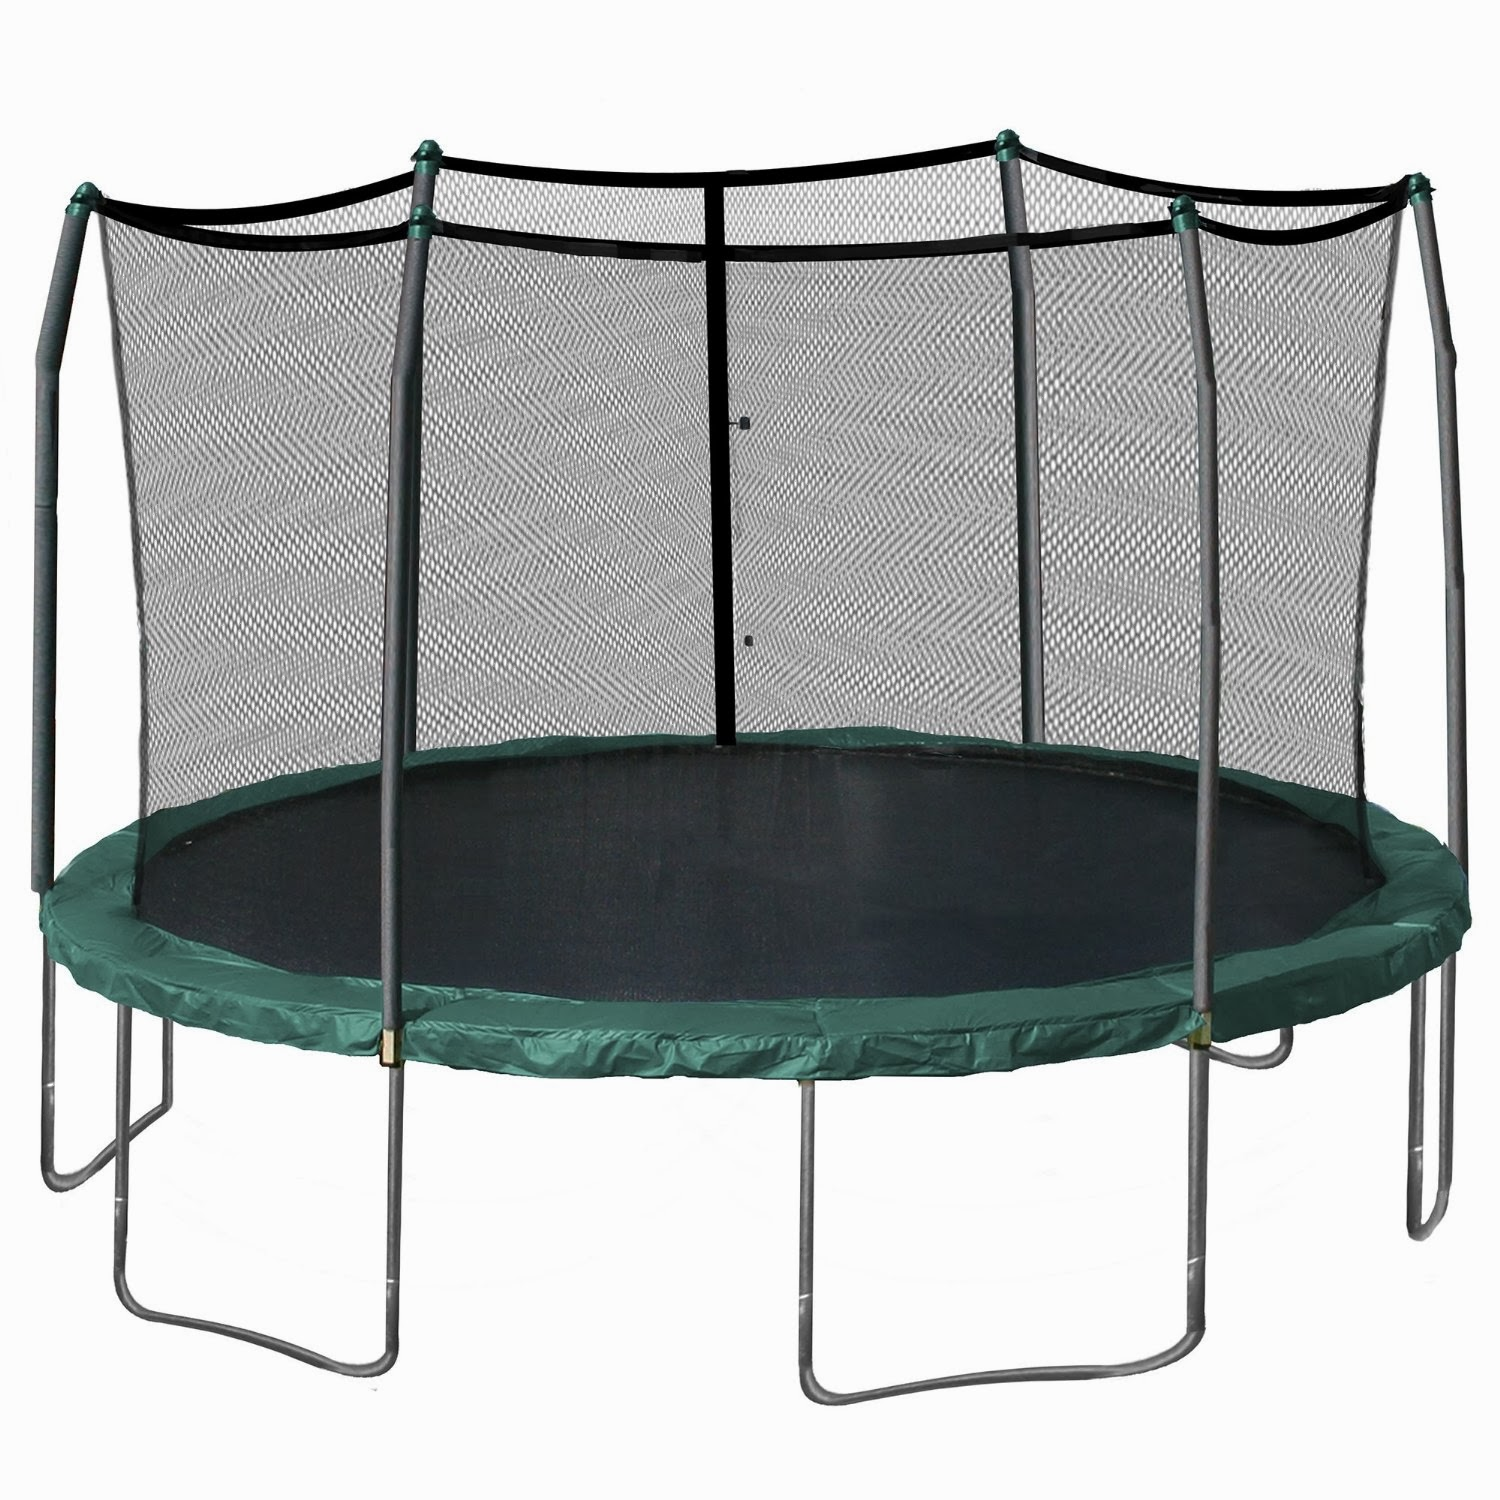 Skywalker Trampolines 15-Feet Round Trampoline and Enclosure with Spring Pad Image